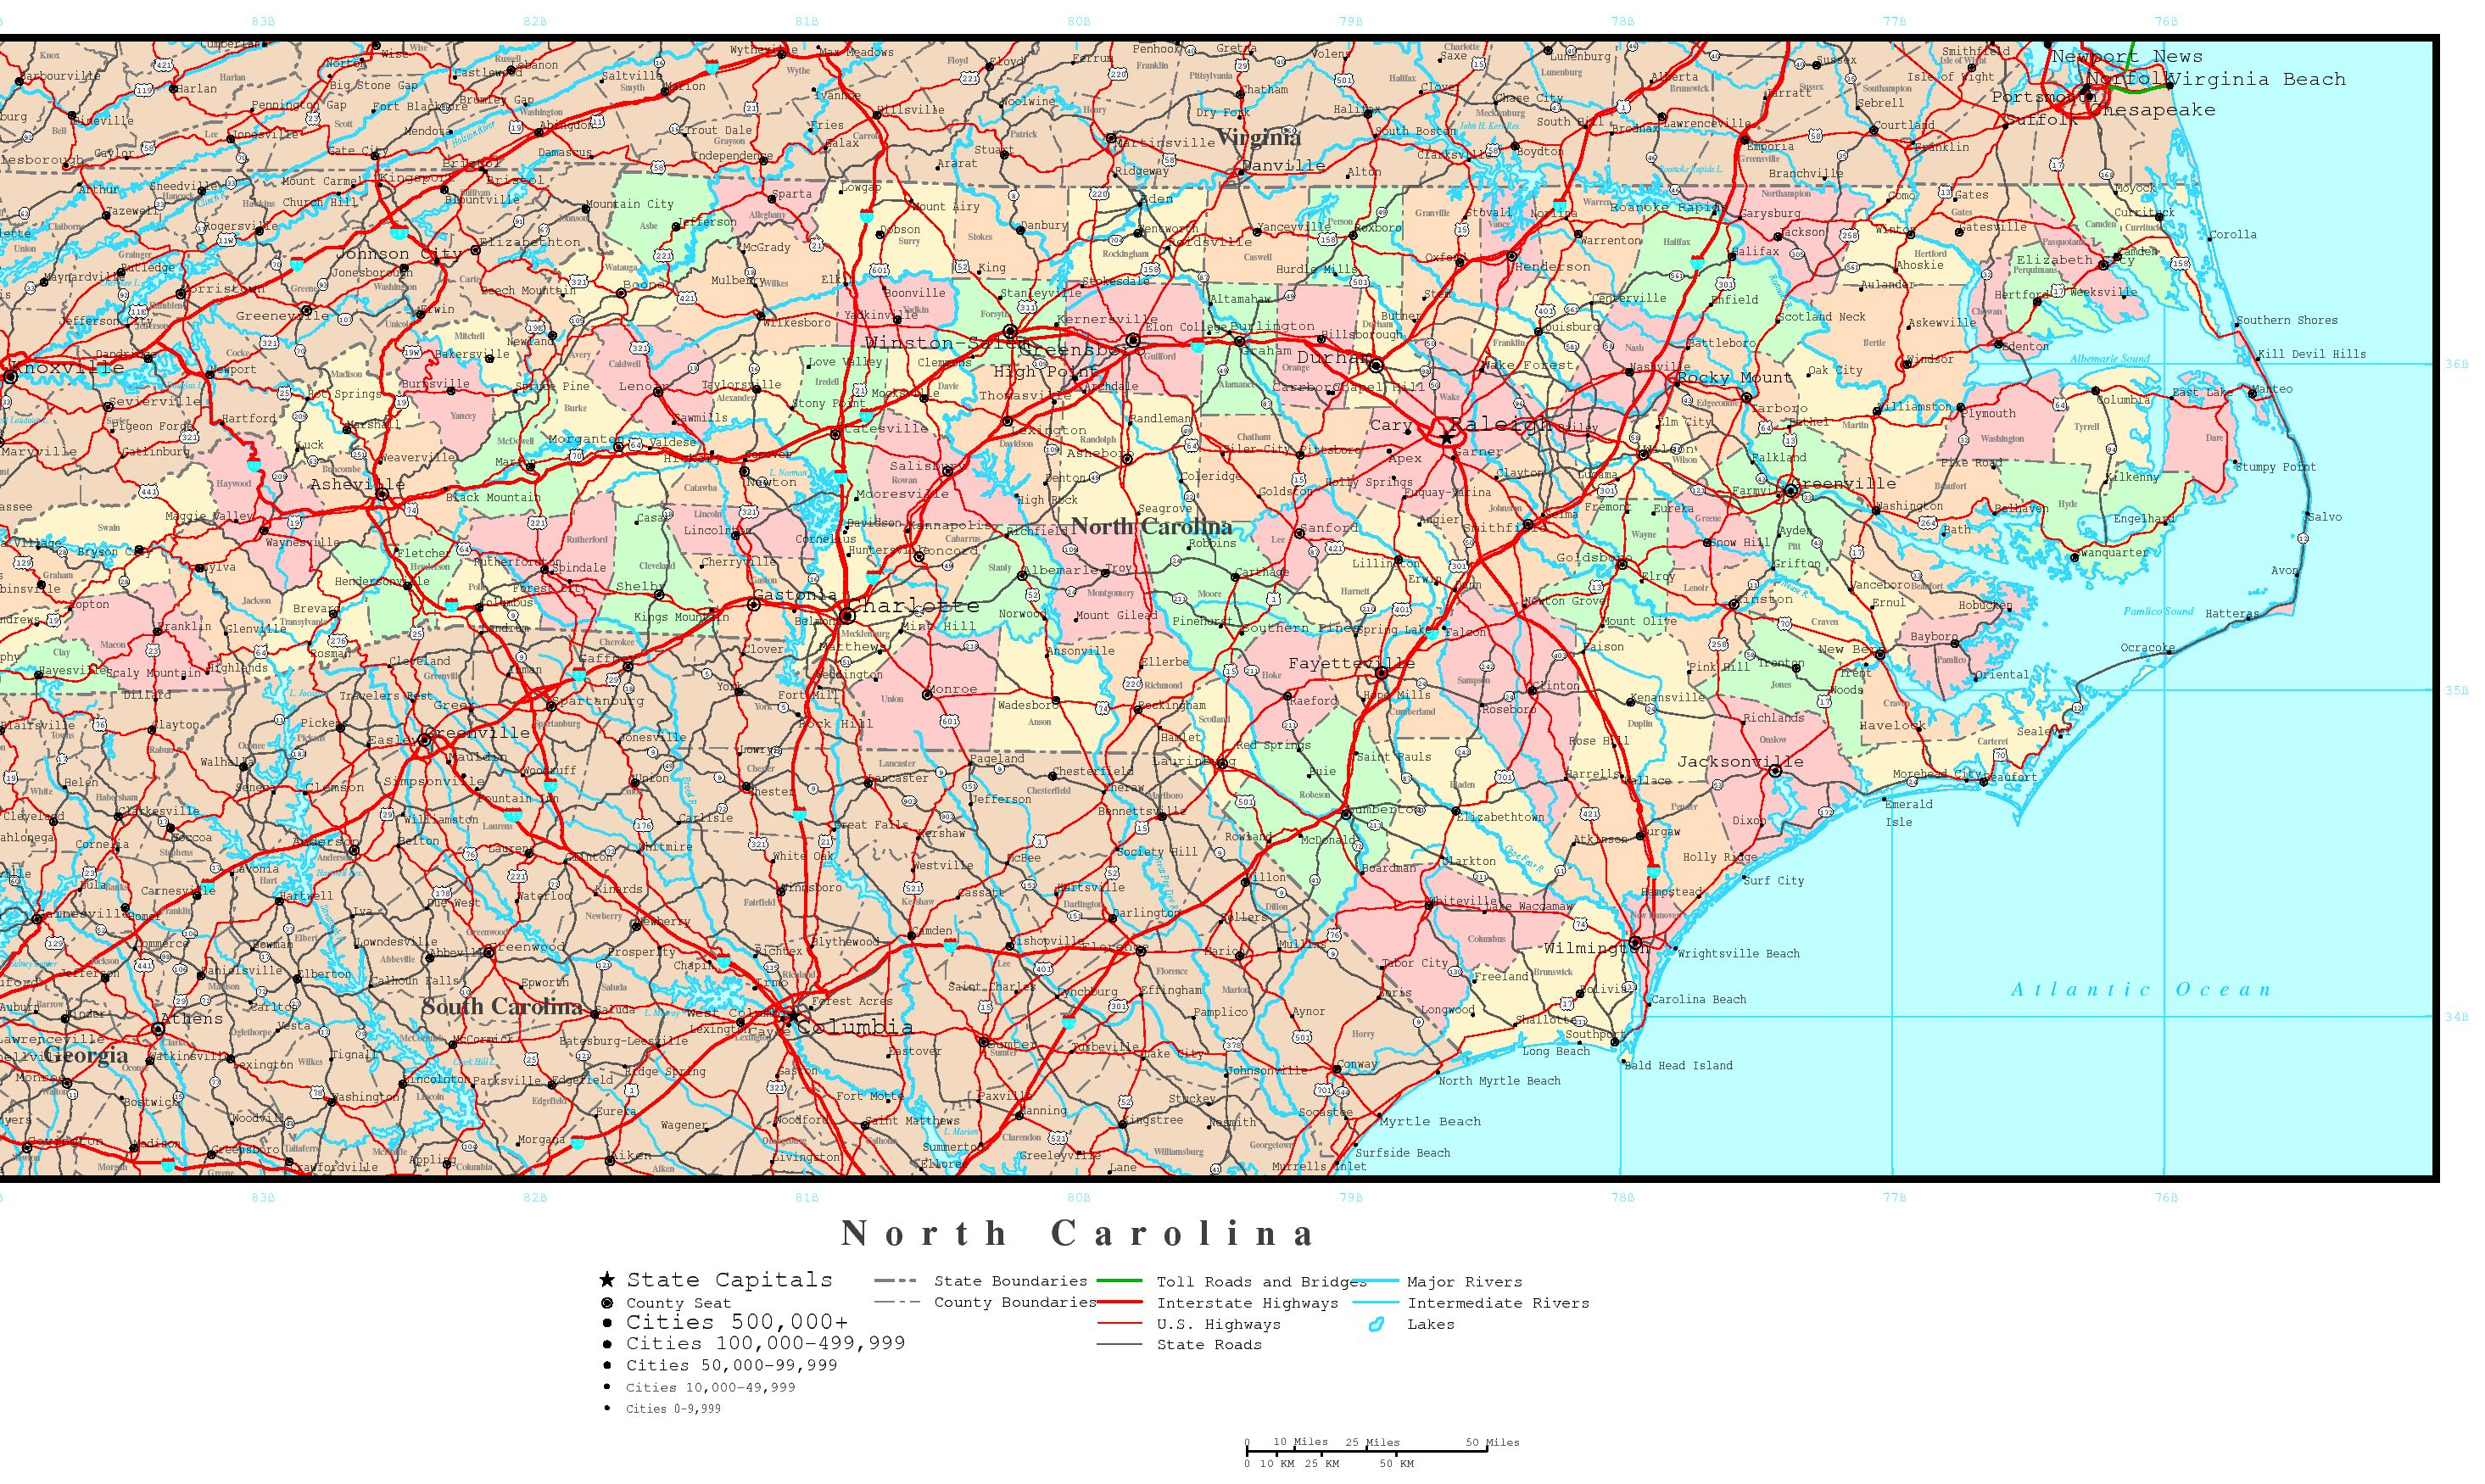 North Carolina Political Map